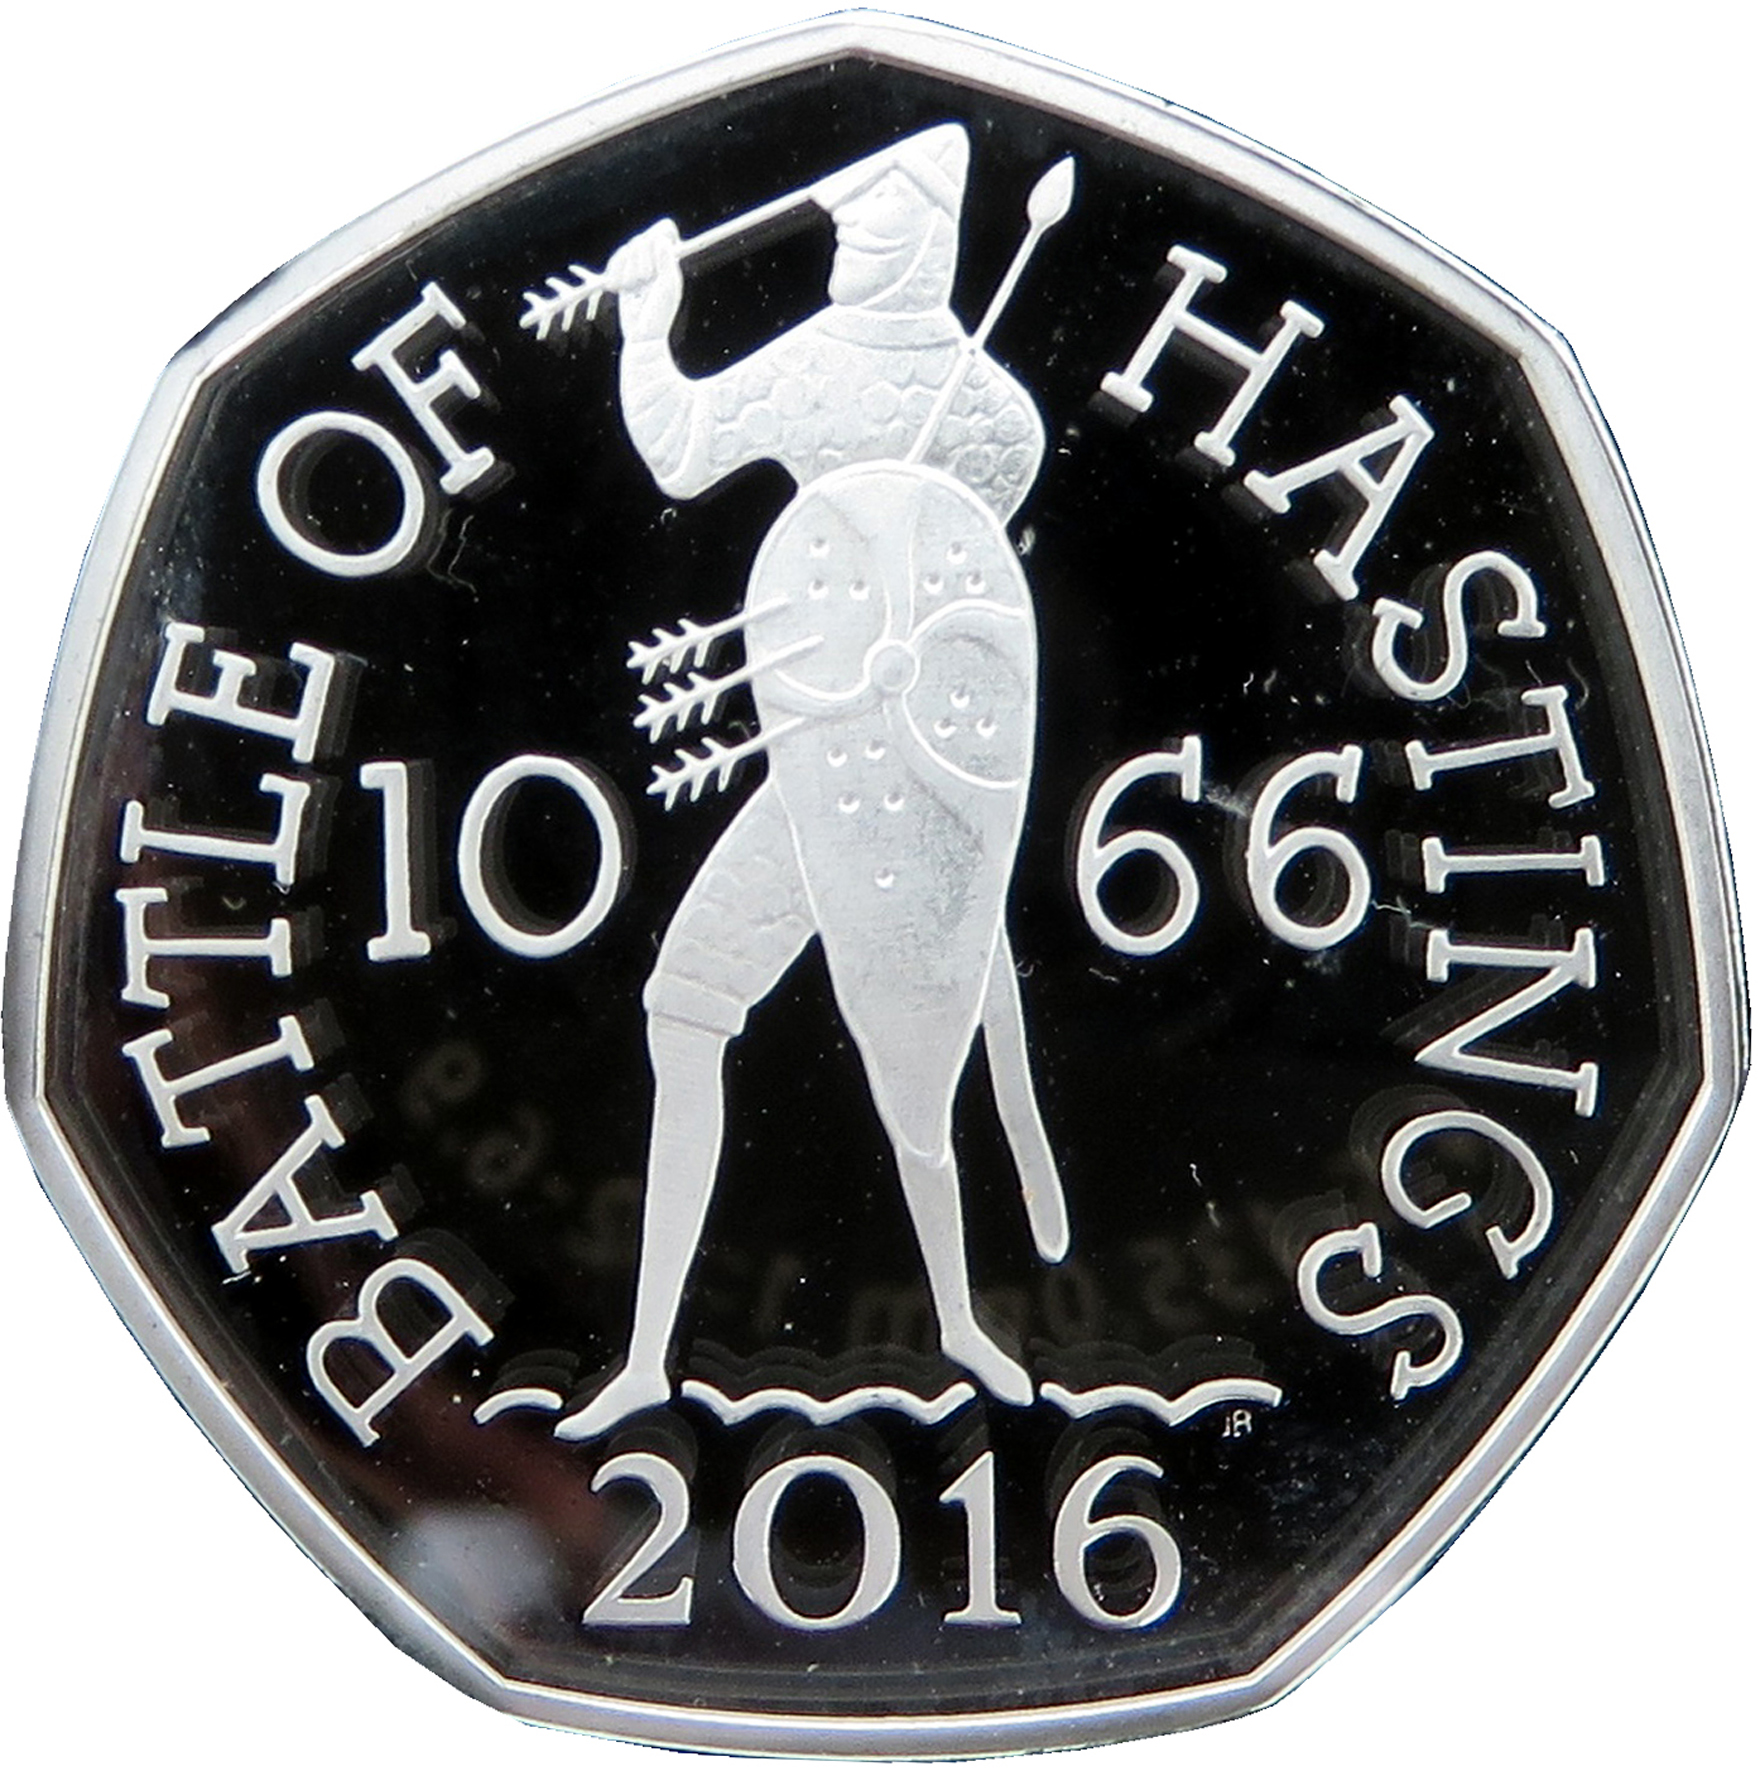 BATTLE OF HASTINGS 950th ANNIVERSARY GREAT BRITAIN 2016 50 PENCE UNC